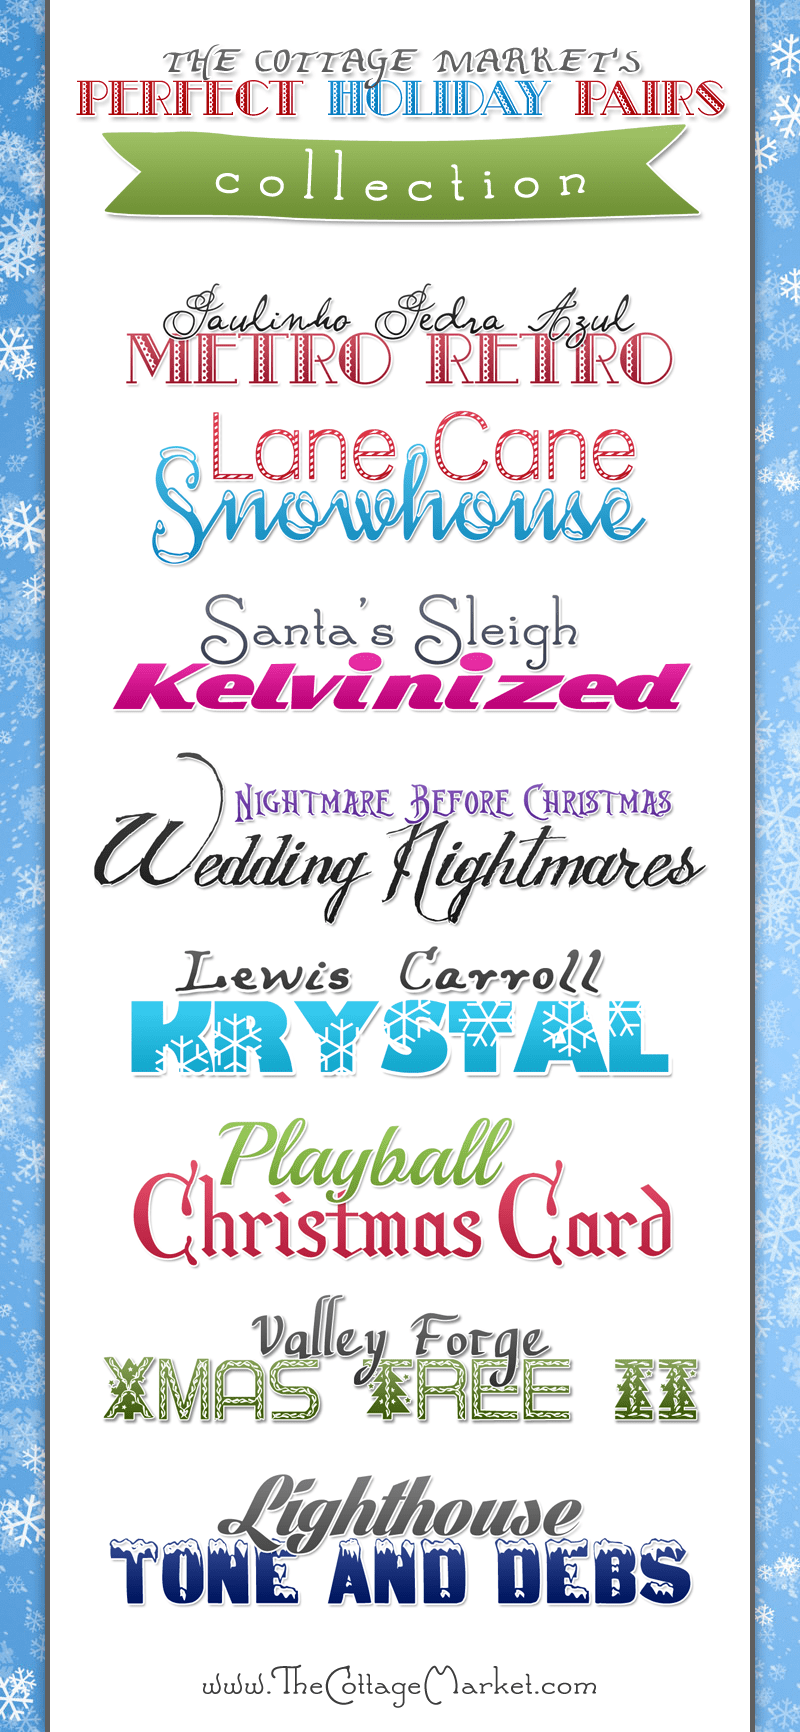 Free Fonts The Perfect Holiday Pair Collection